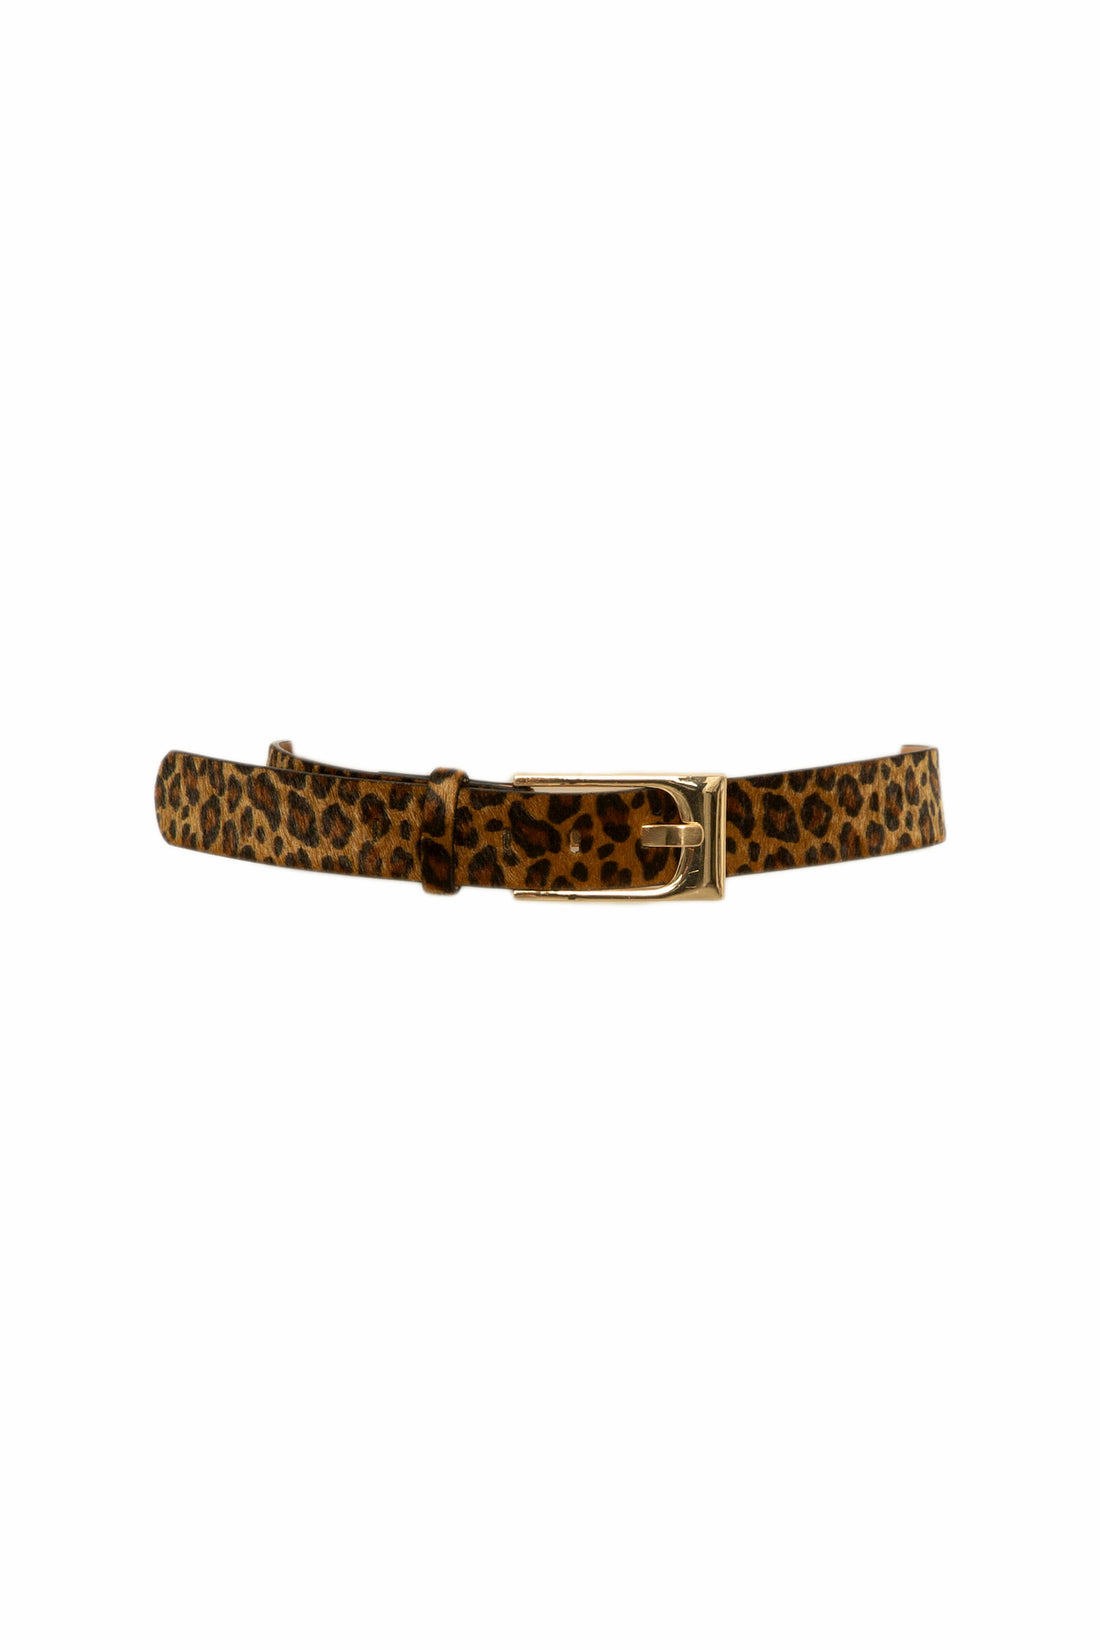 WILD FOR YOU FAUX FUR BELT